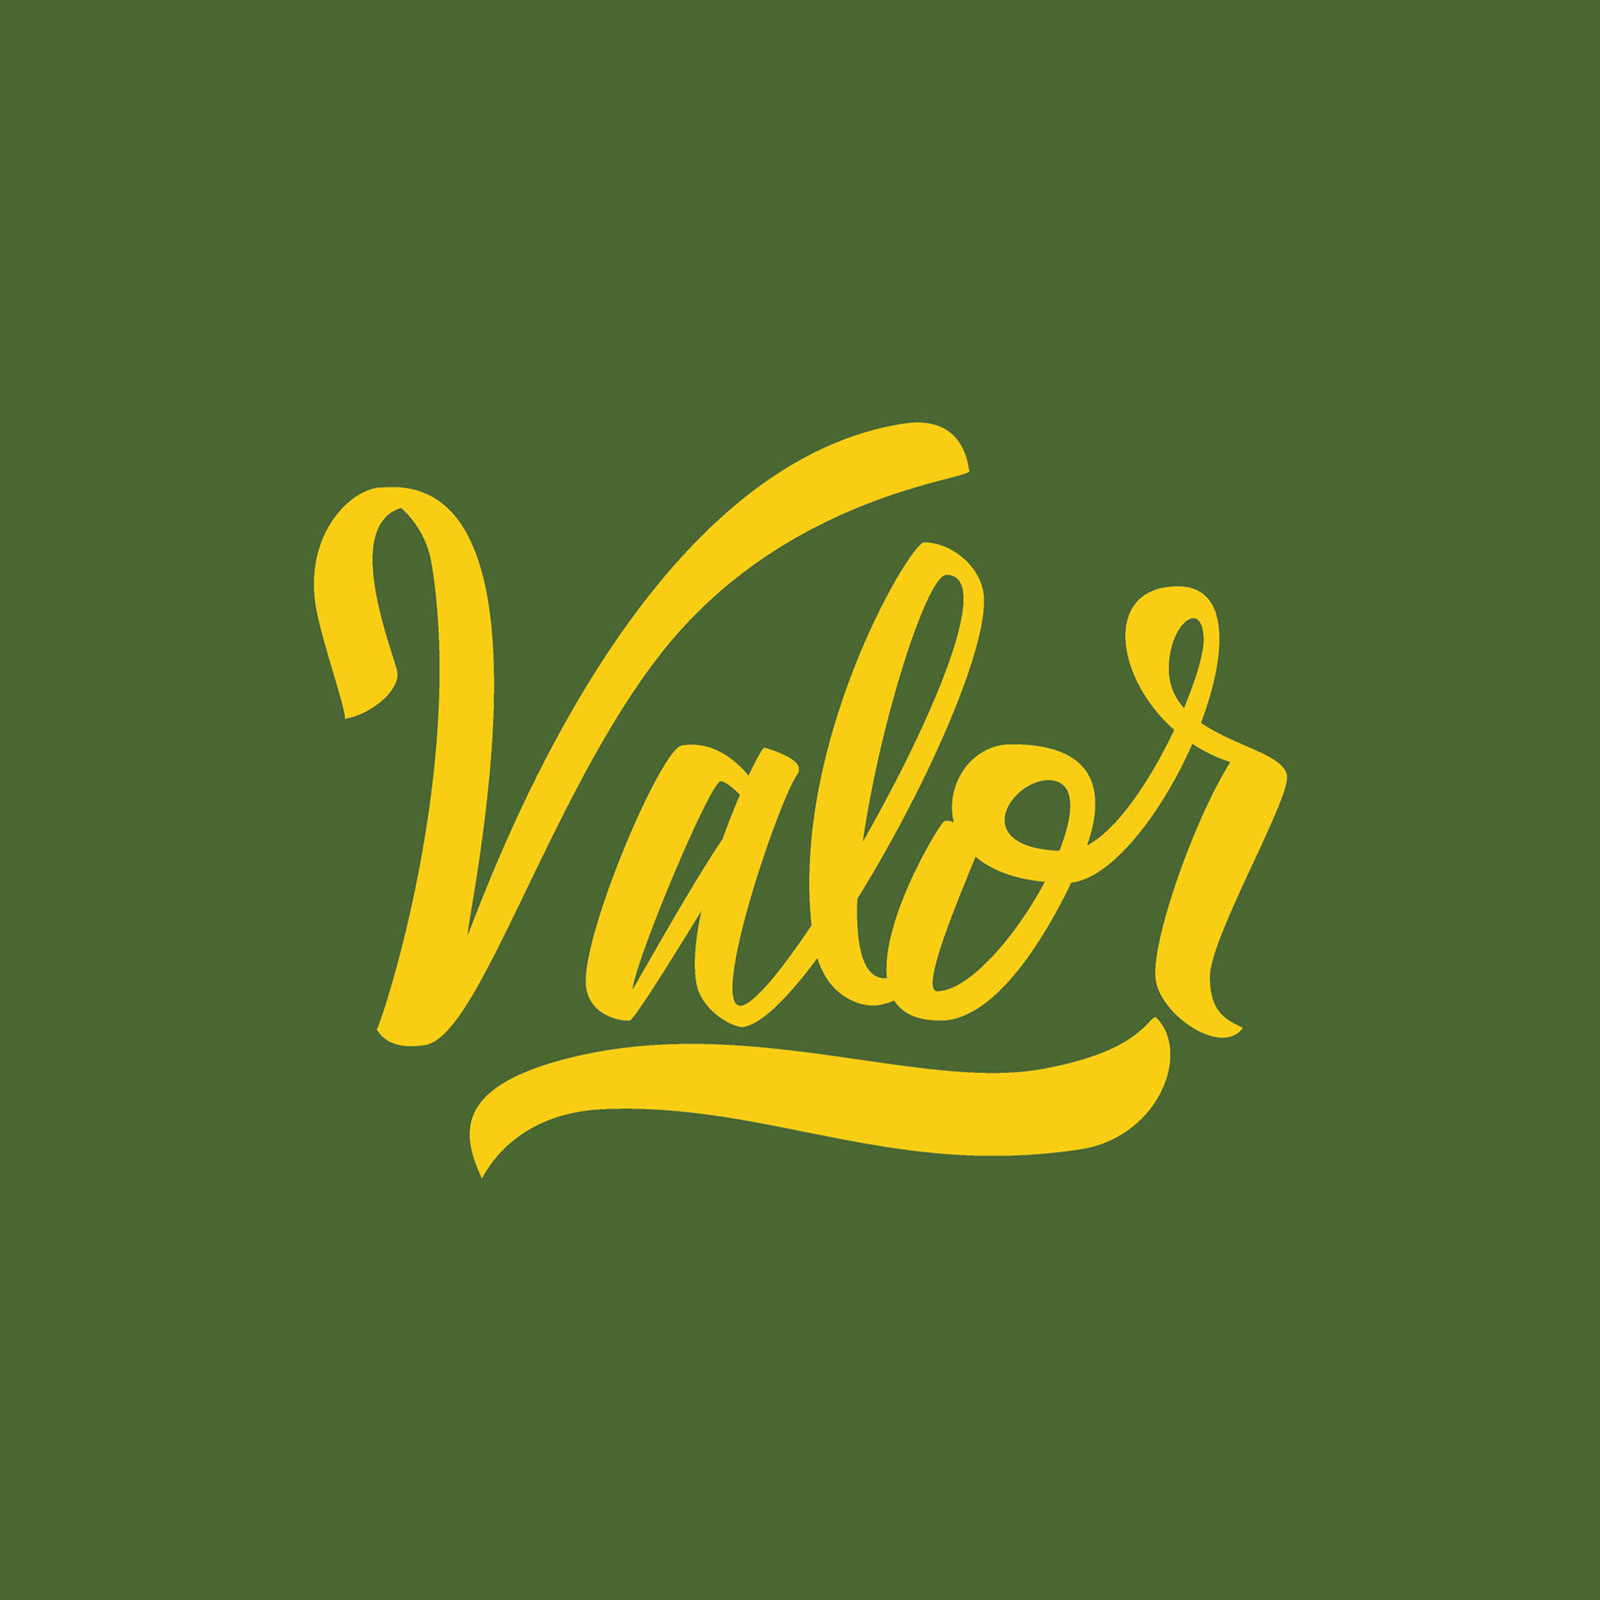 Valor - Darold Pinnock